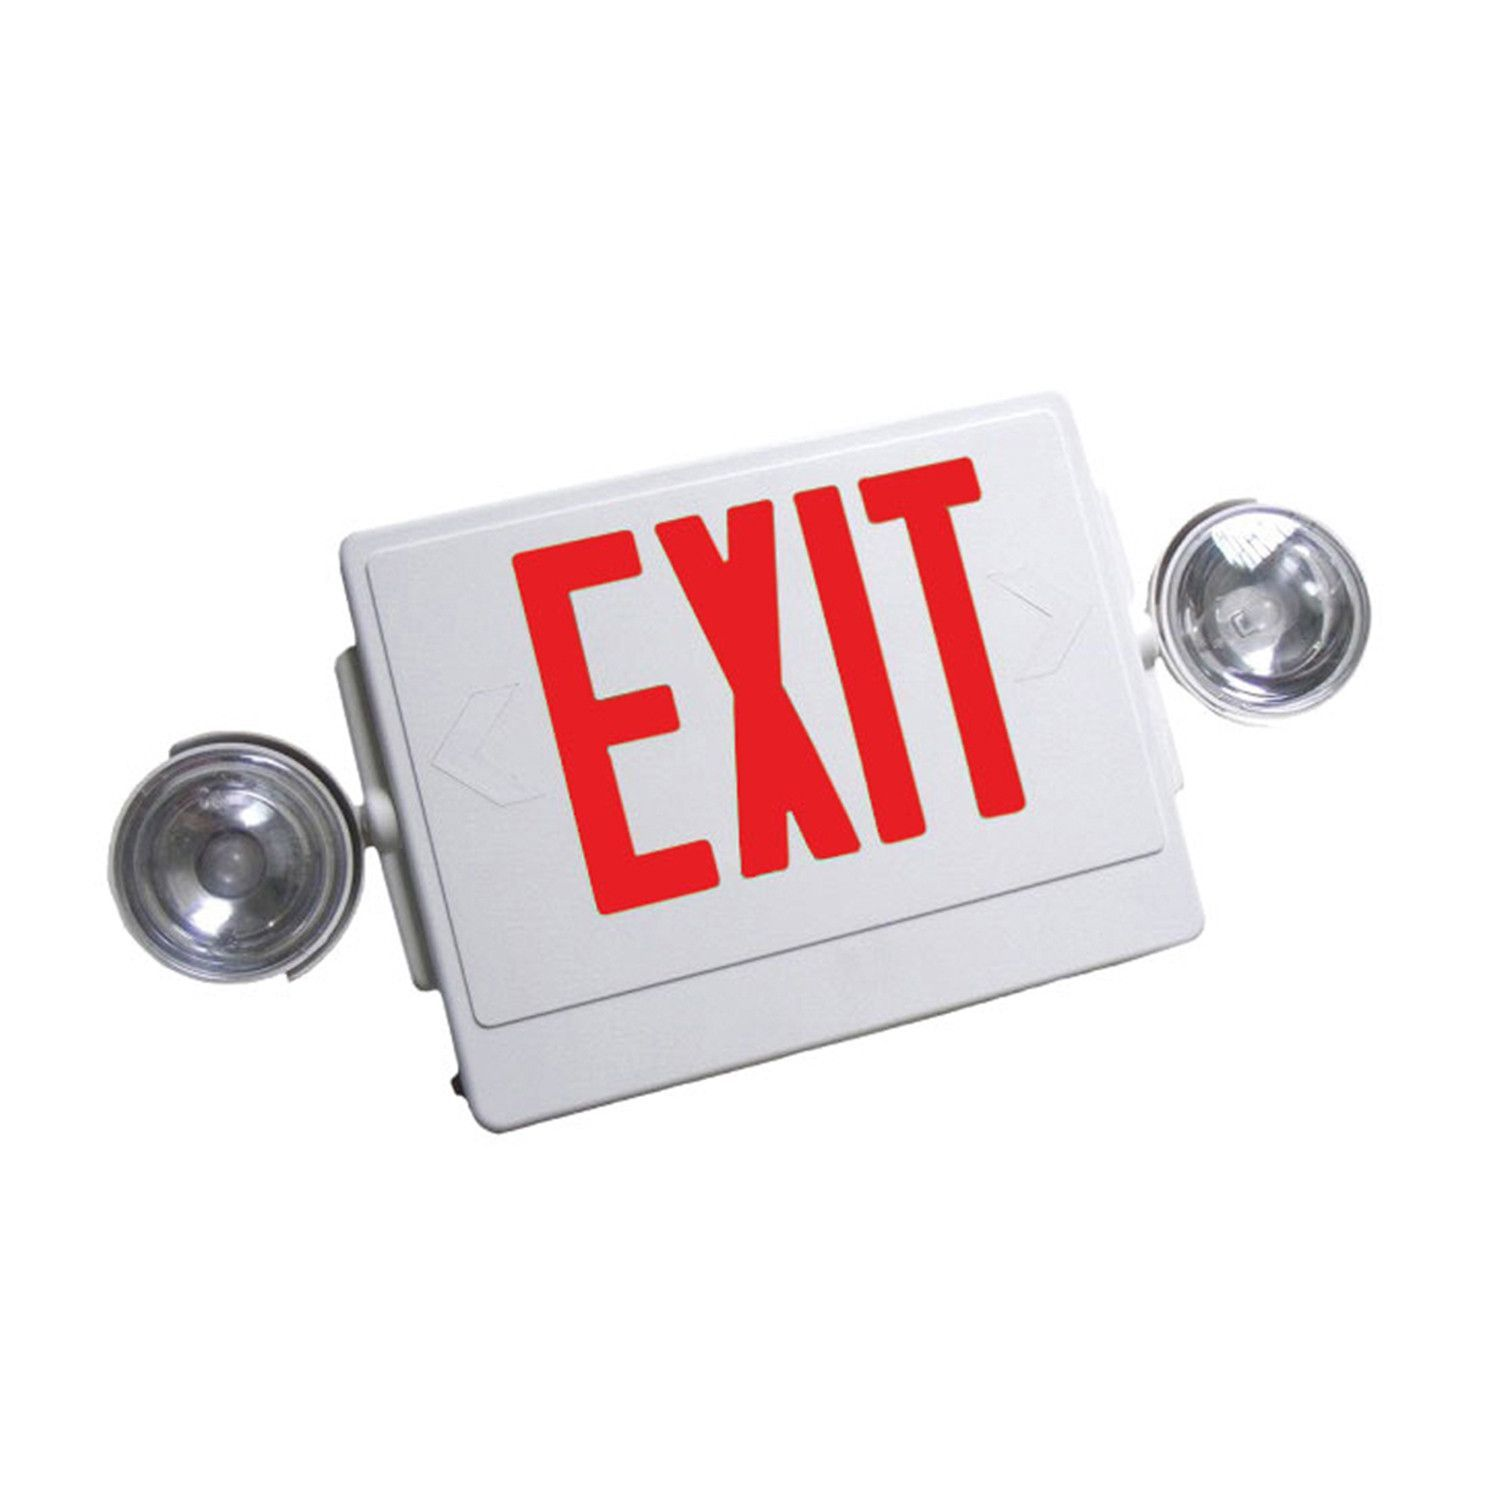 NICOR Remote Capable Emergency LED Exit Sign white w/ red lettering